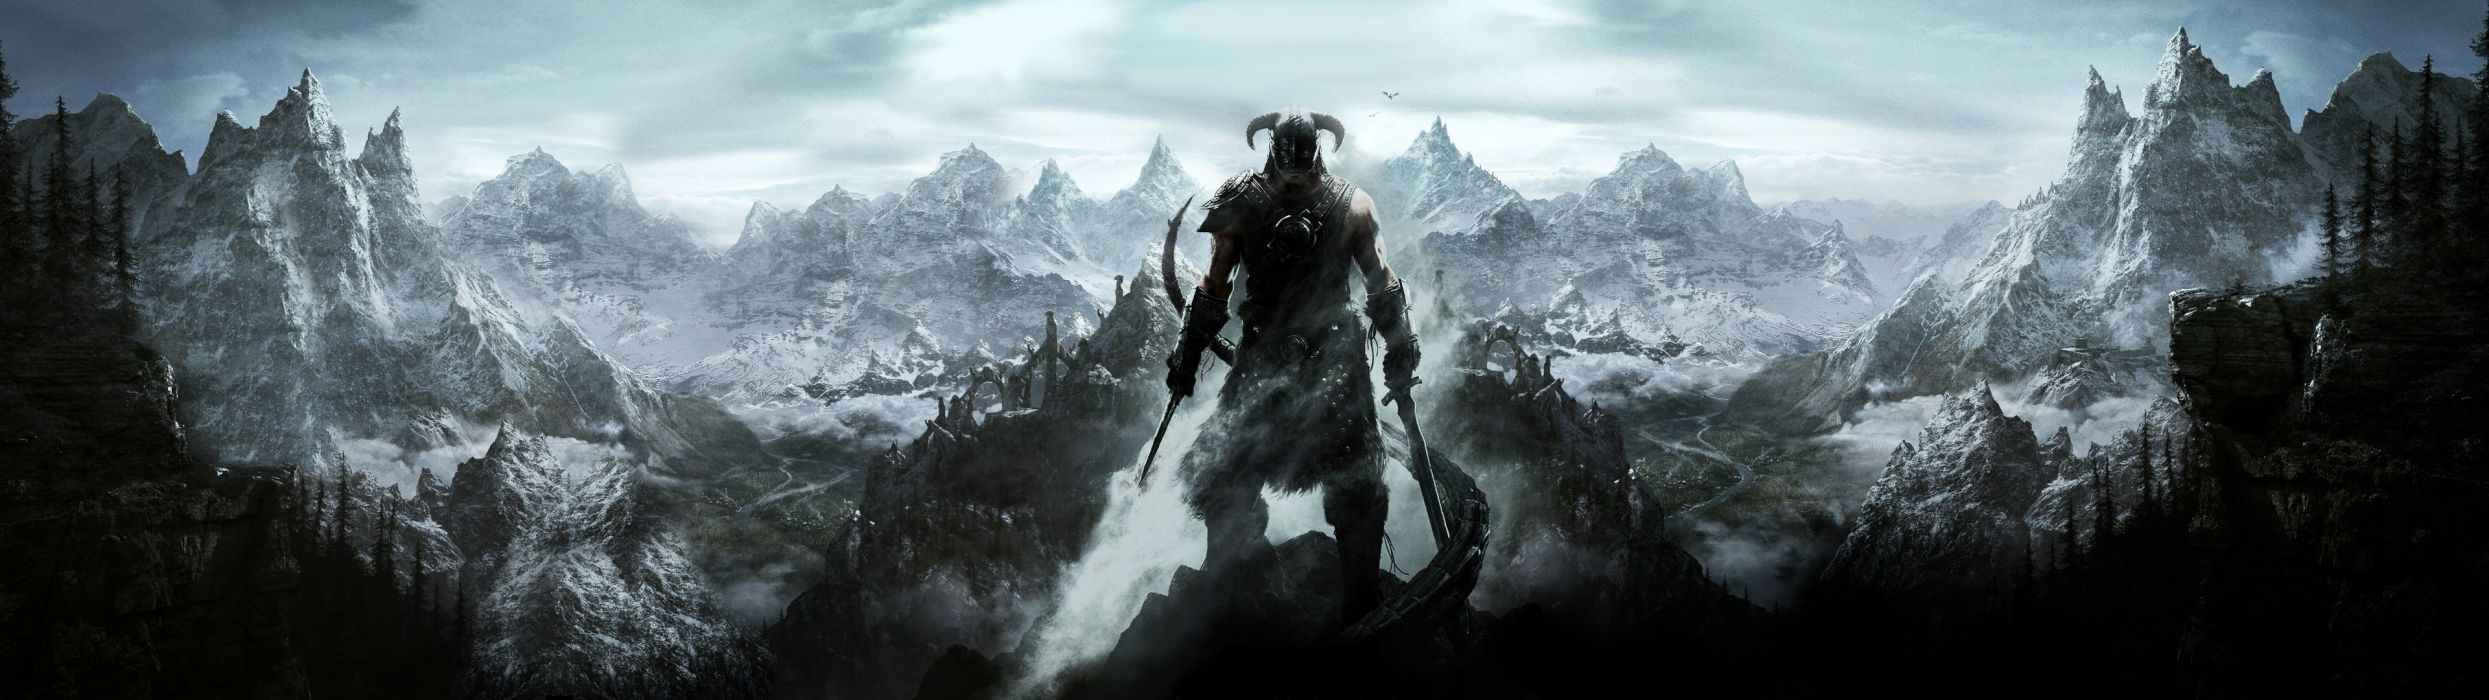 dual monitor scree mul multiple game skyrim wallpaper | 3840x1080